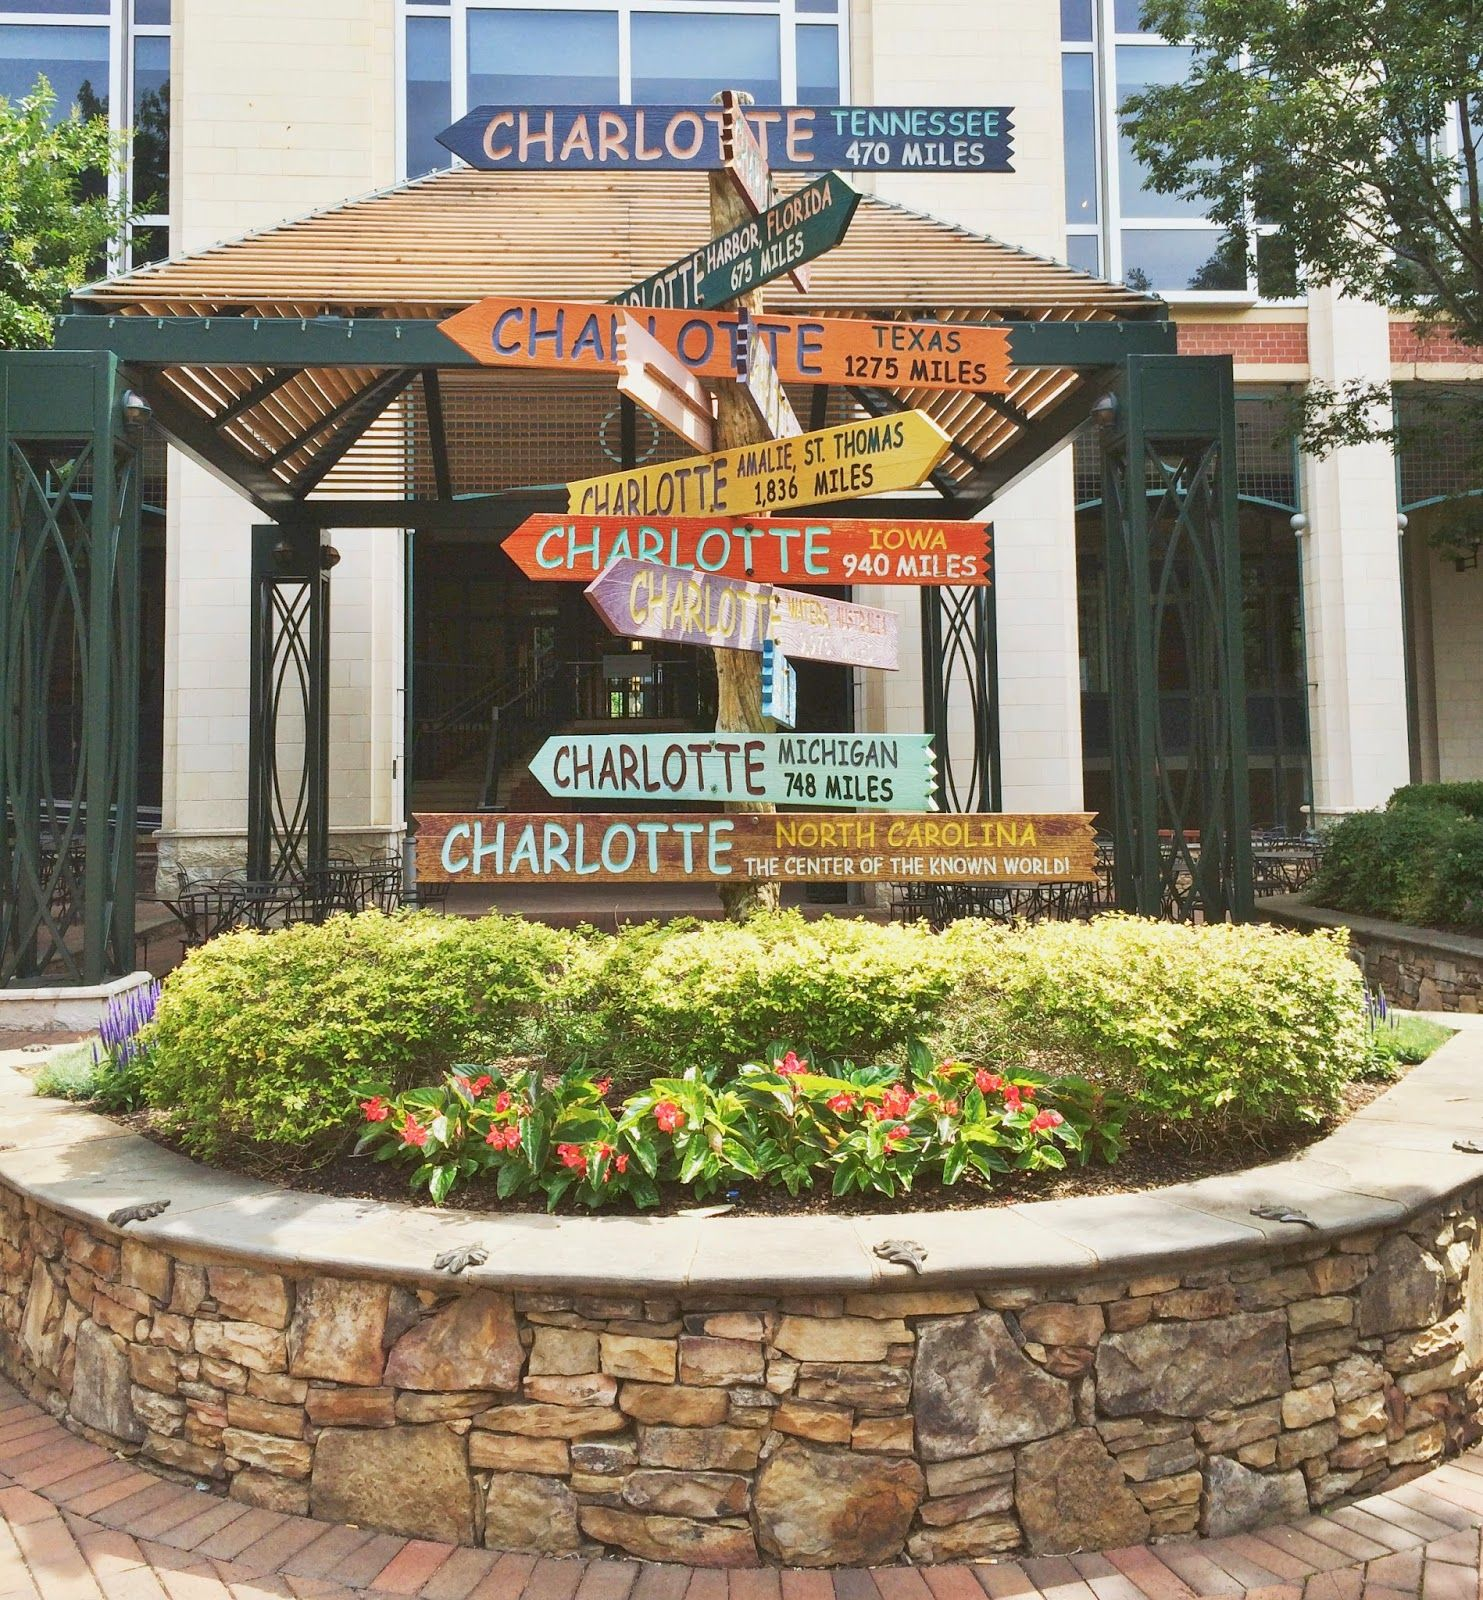 Top landscapers in charlotte nc - Top 10 Southern Cities To Visit Charlotte Nc